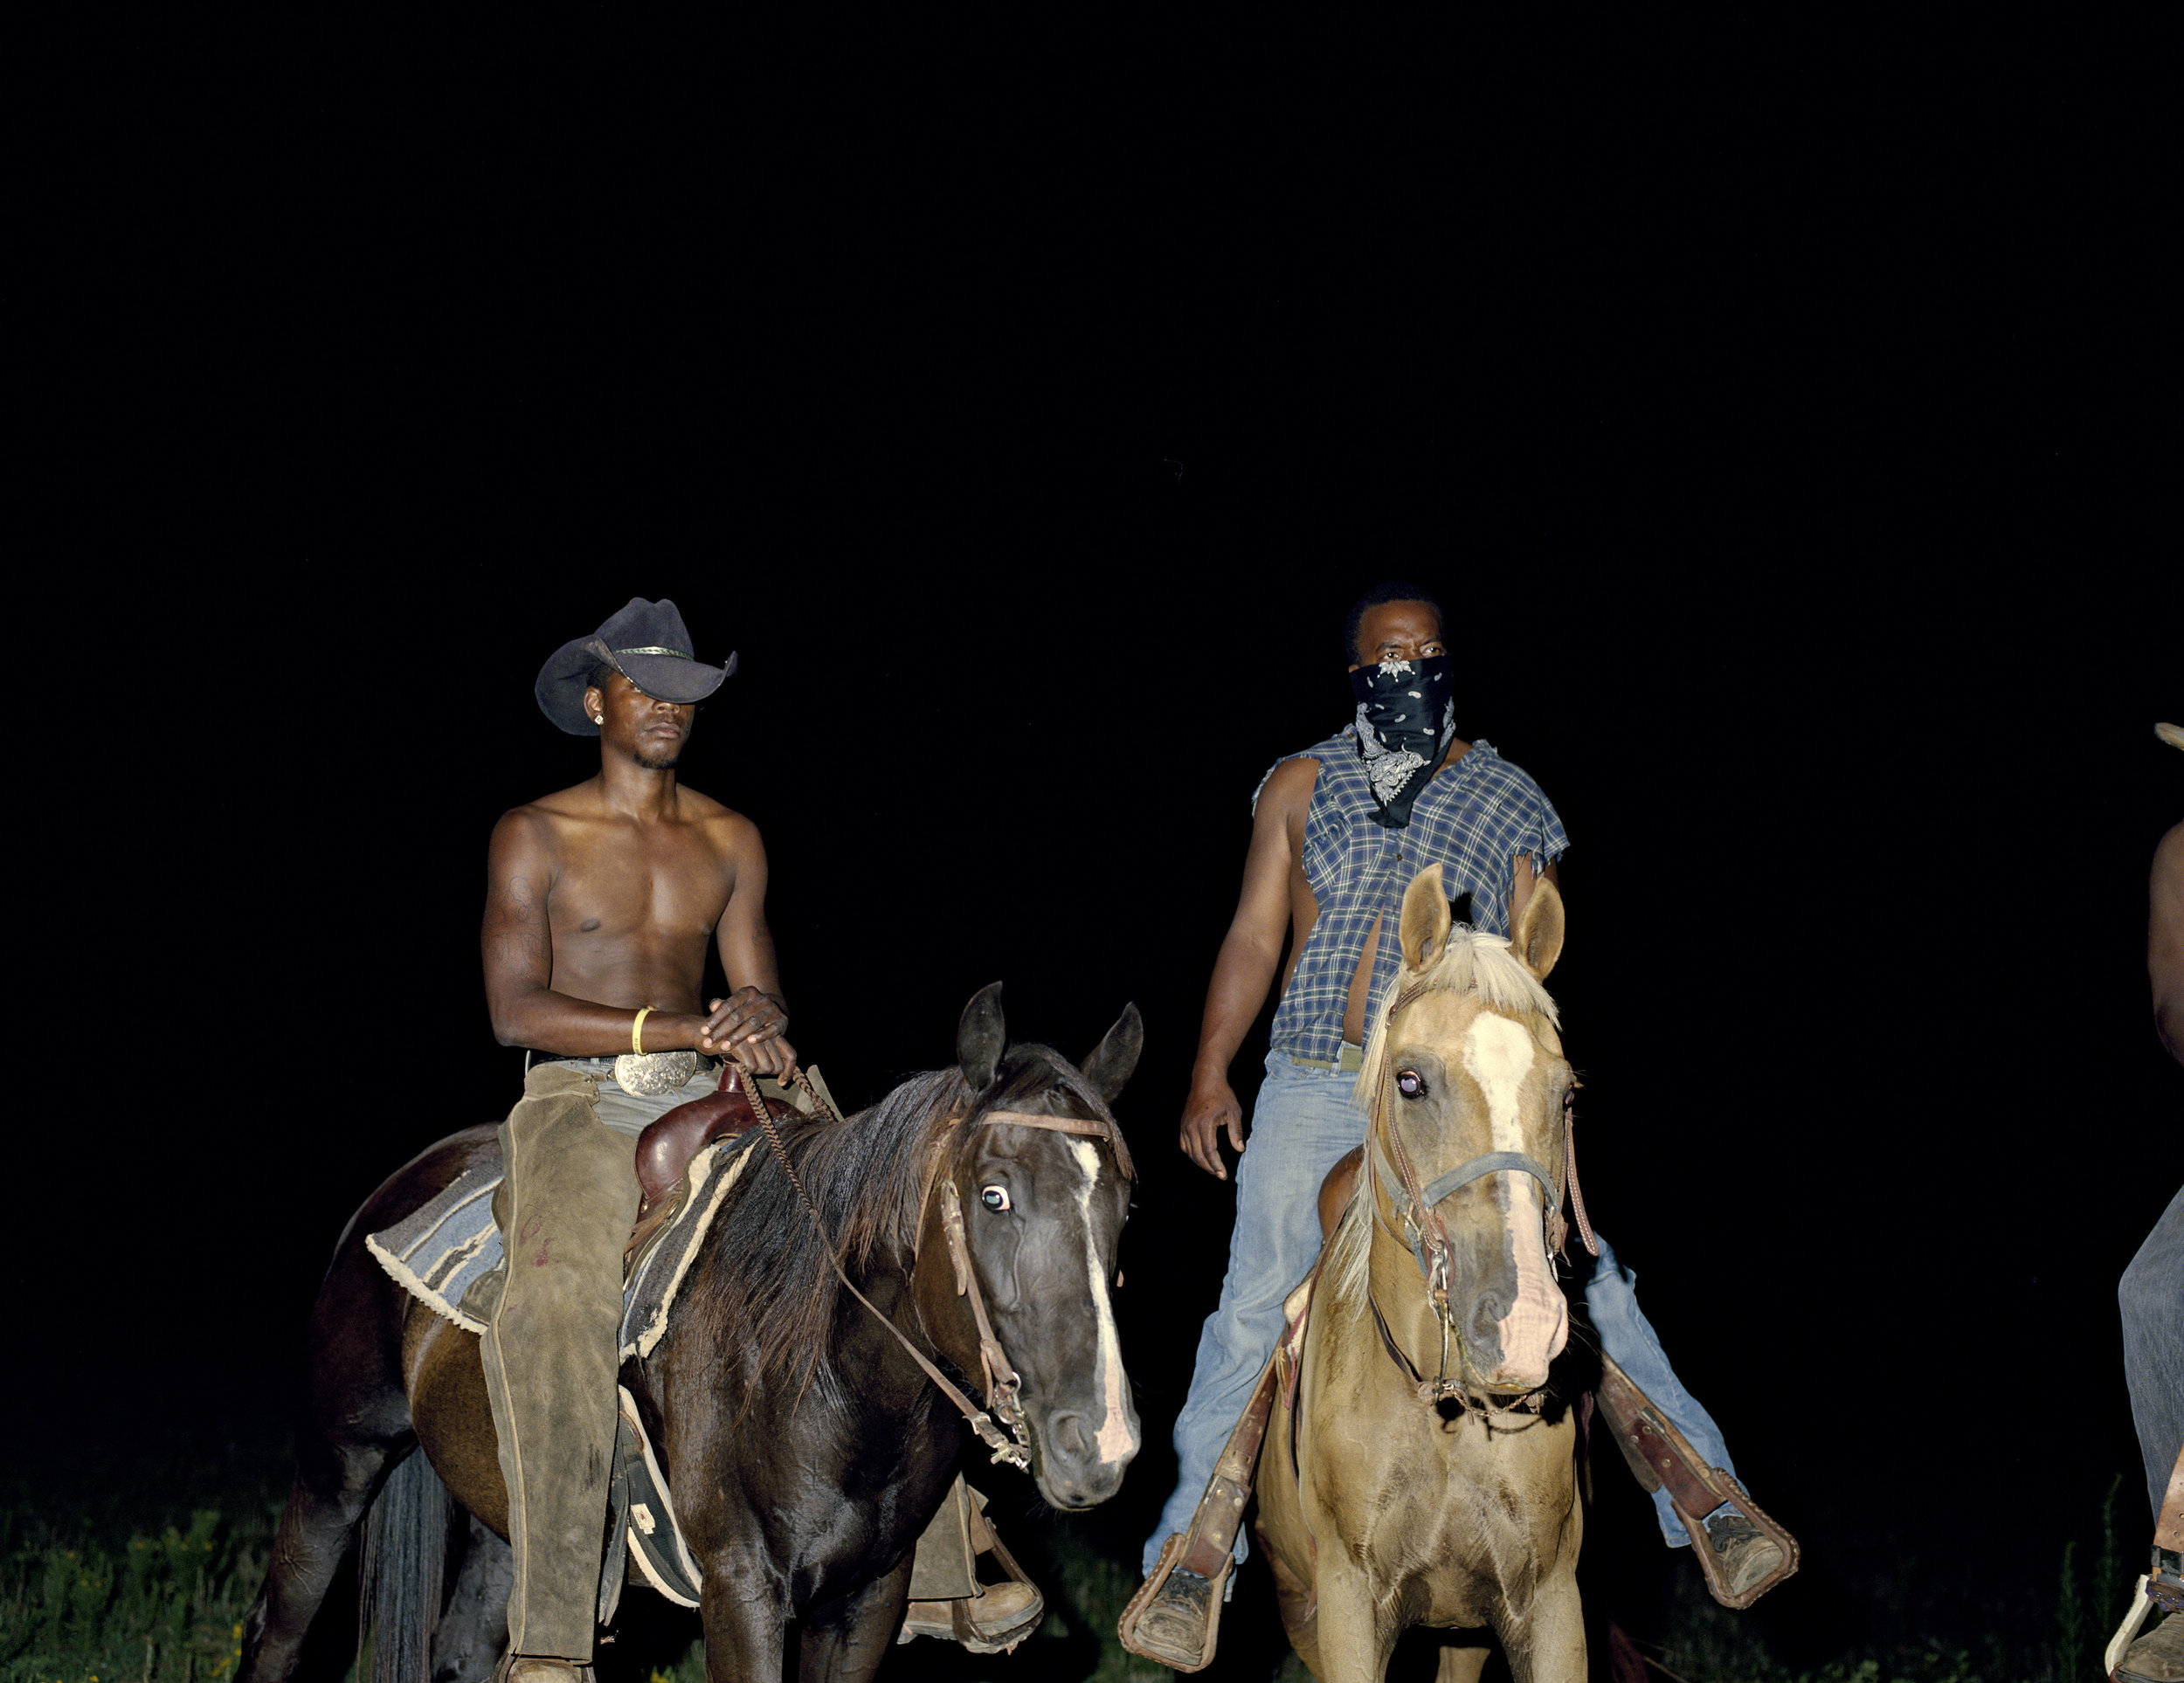 Deana Lawson,  Cowboys , 2014, © Deana Lawson, courtesy of Rhona Hoffman Gallery, Chicago.